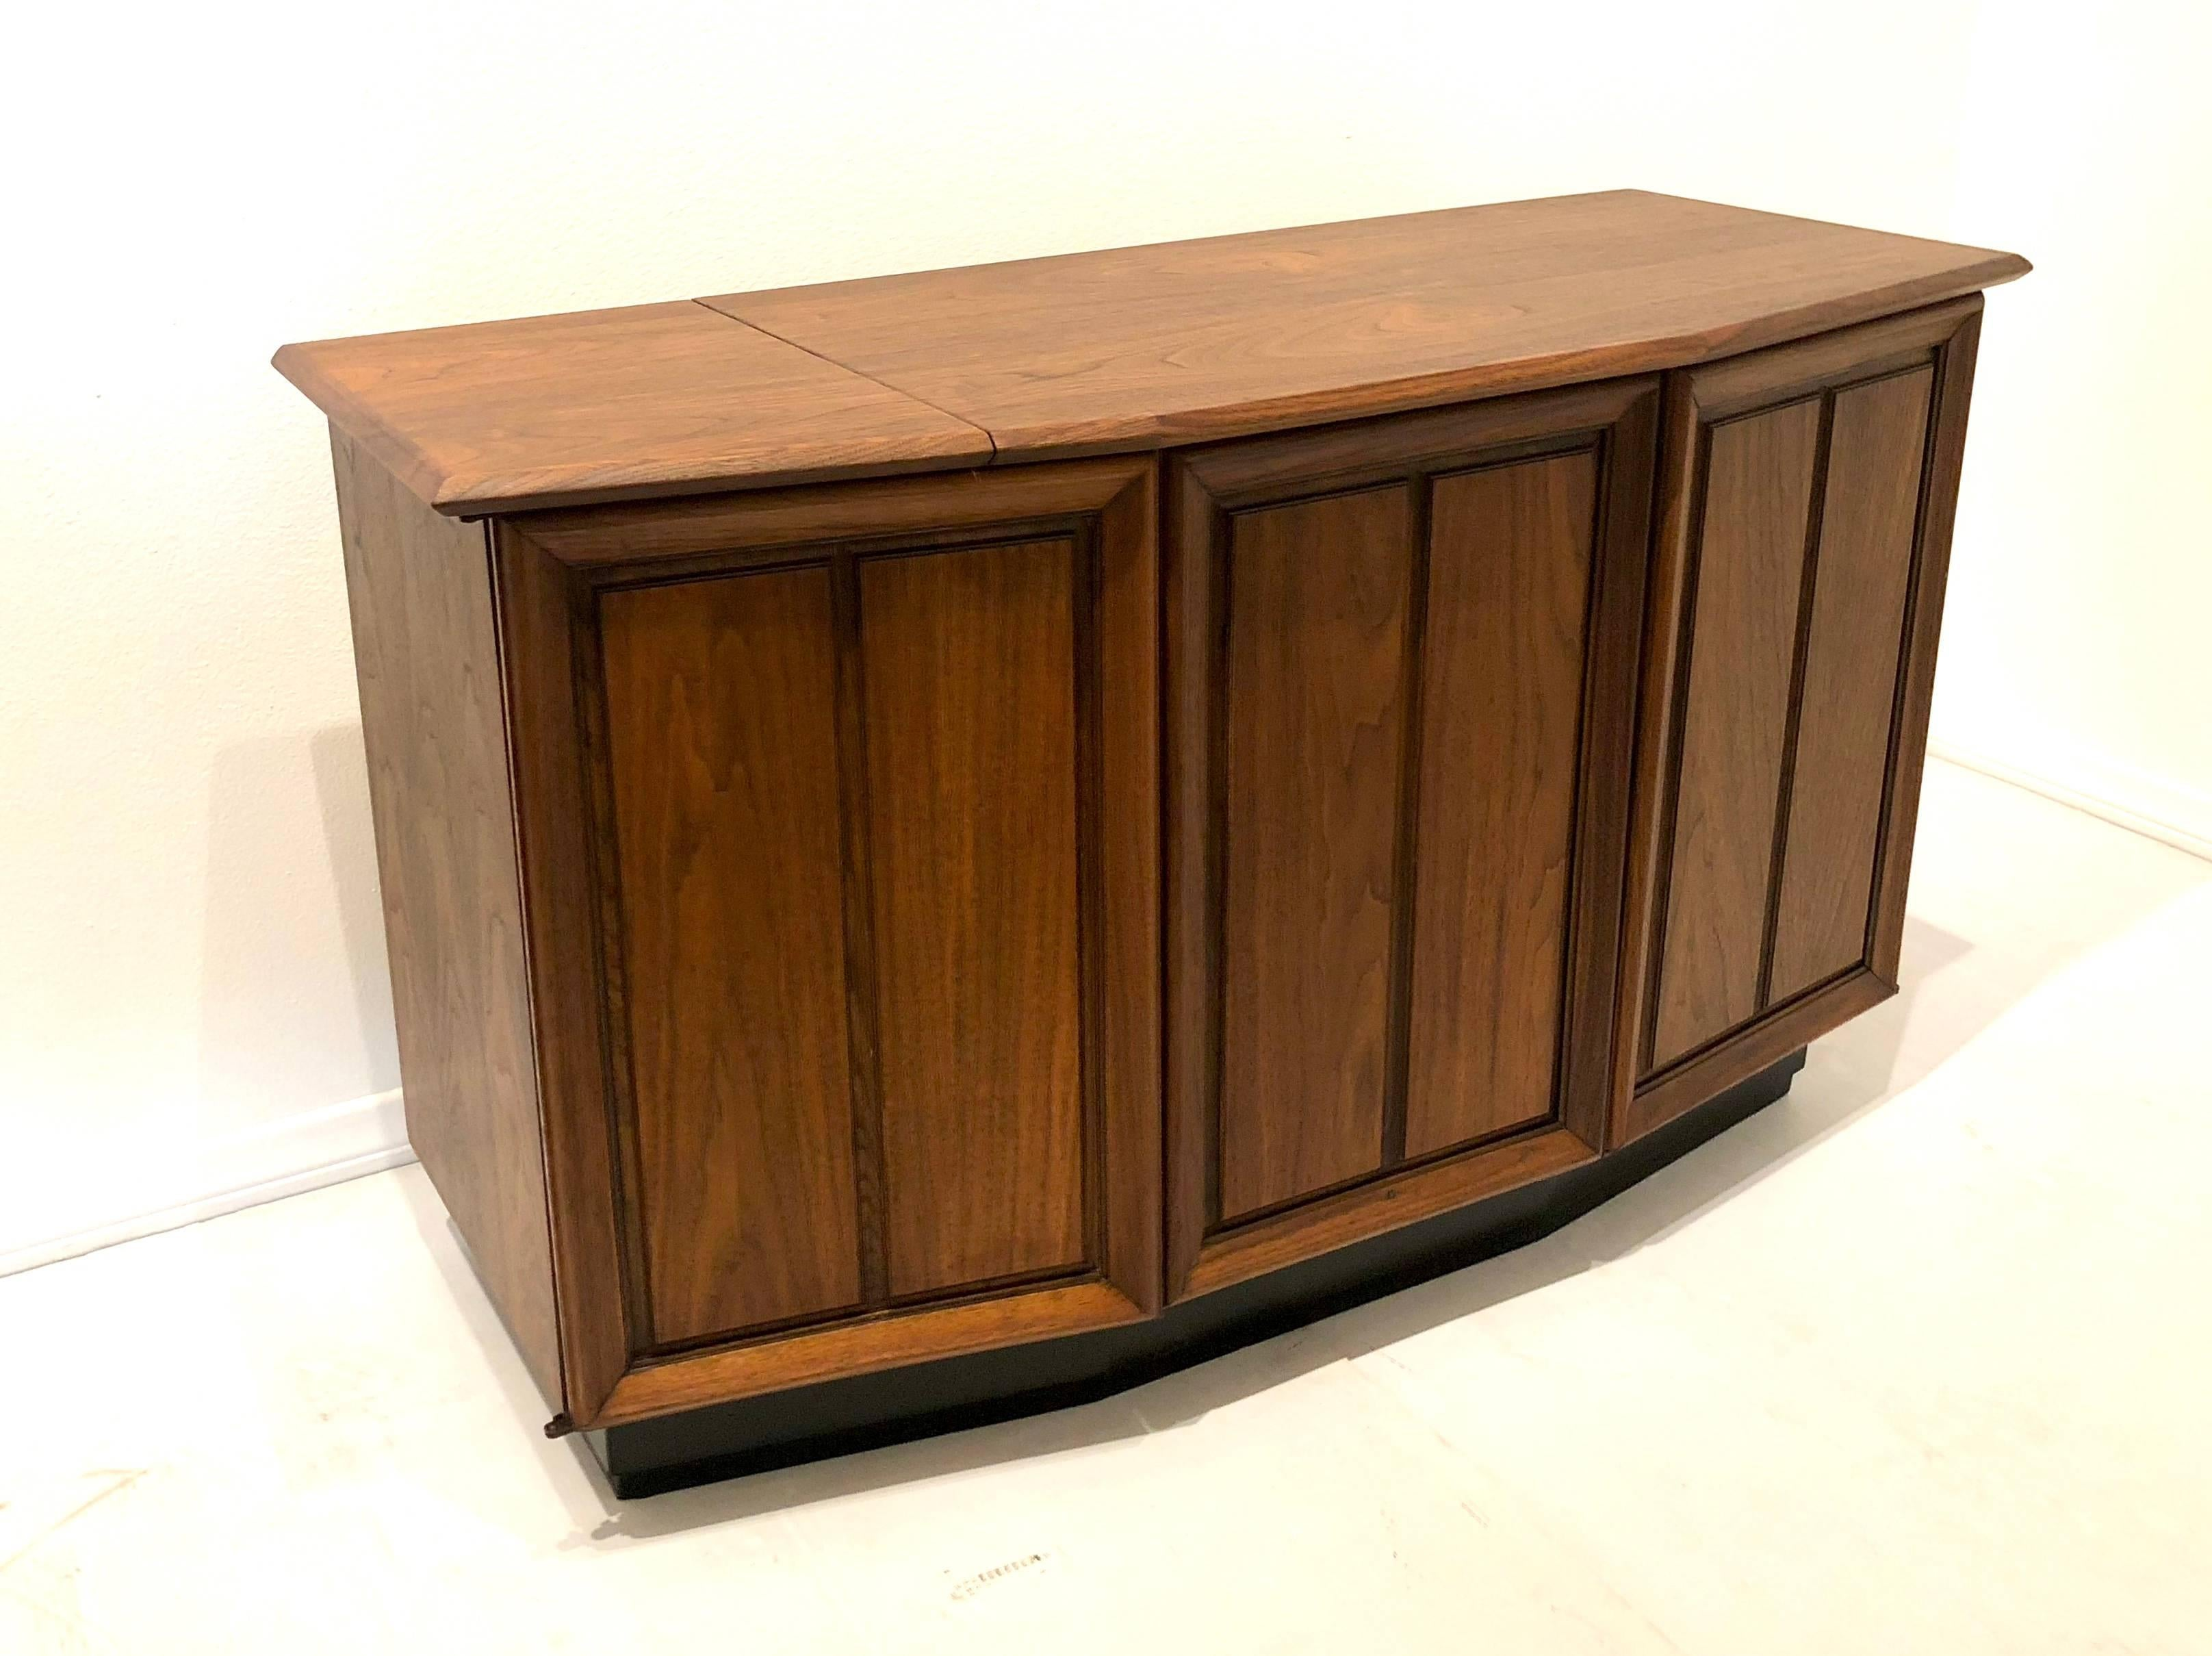 Superieur Striking Small American Midcentury Walnut Console Stereo Cabinet By The  Fisher For Sale 5